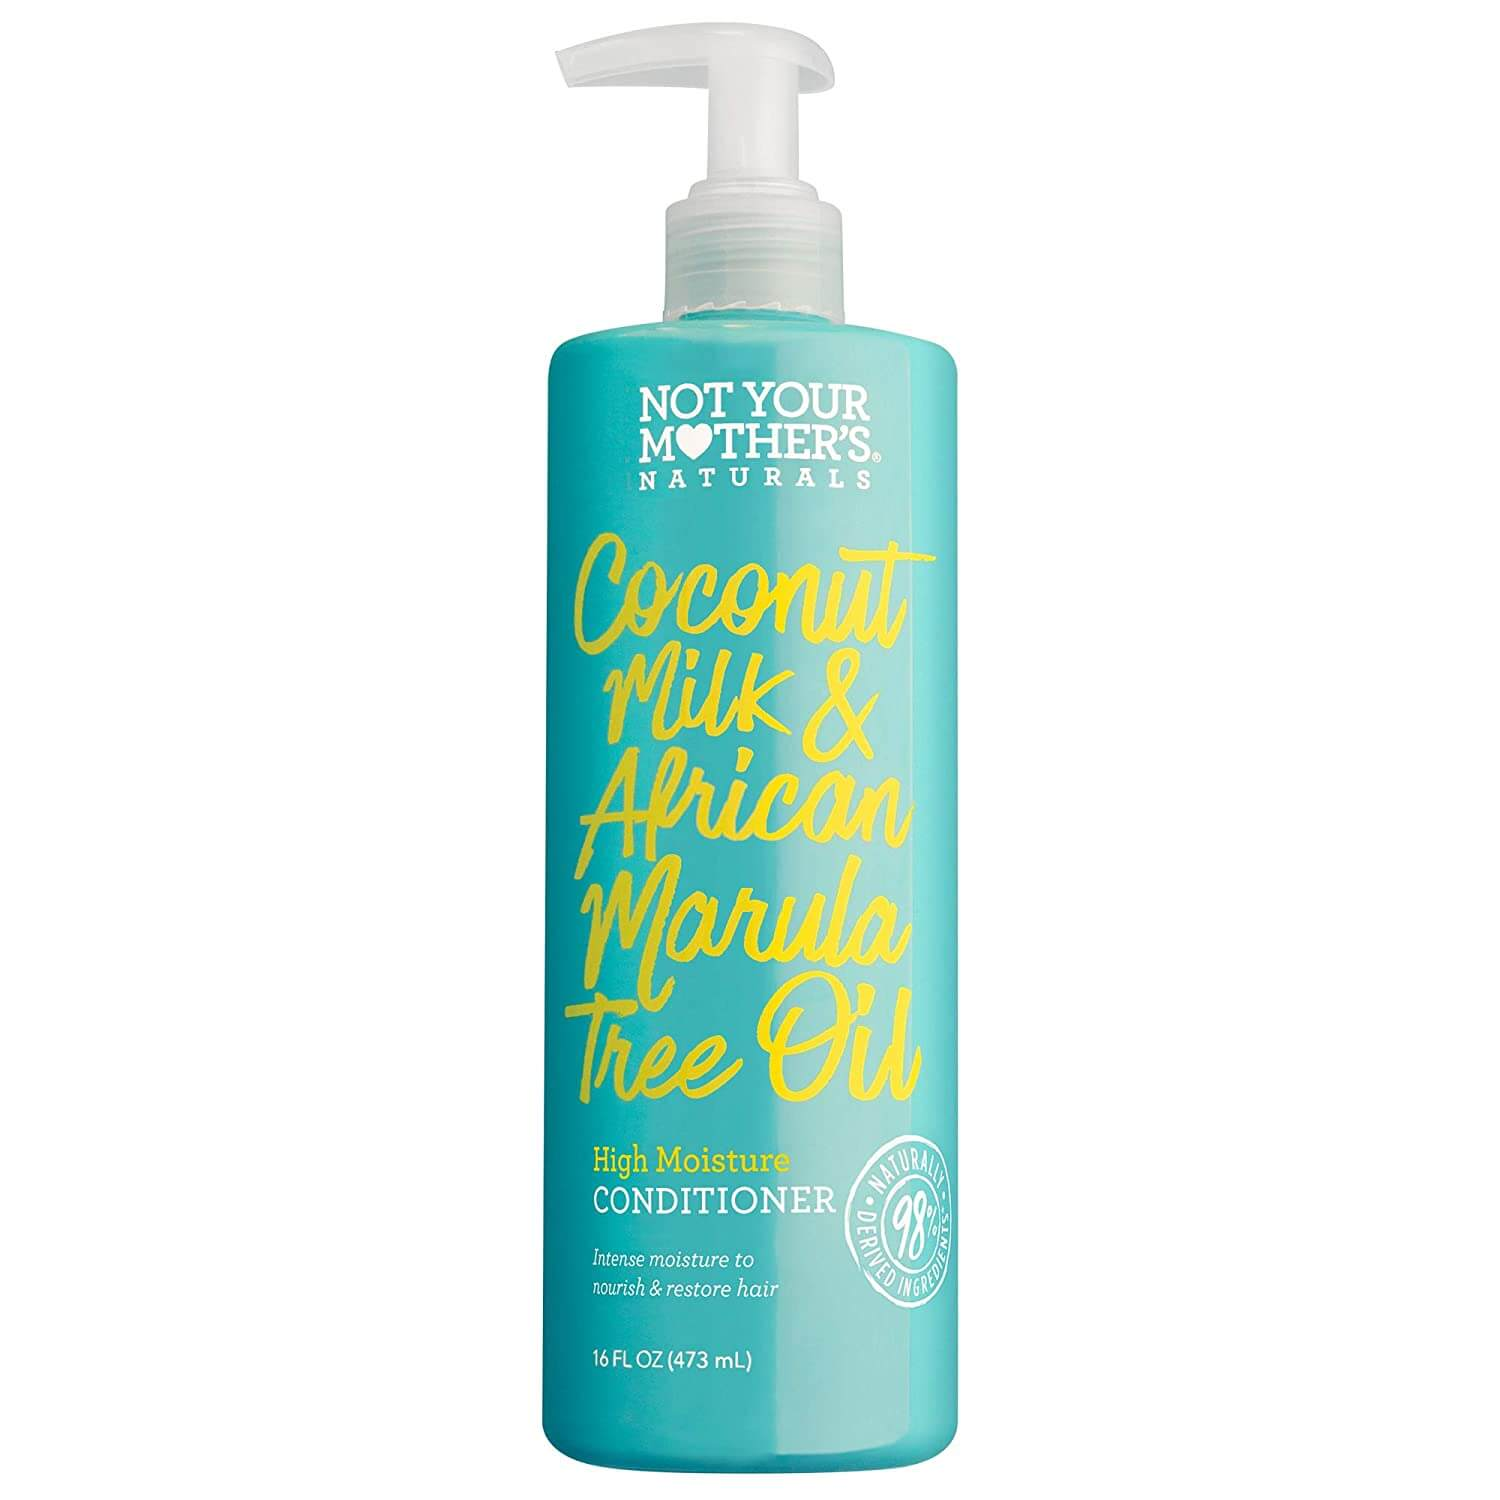 NotYour Mother's Coconut Milk Silicone Free Conditioner as one of the tips for healthy hair